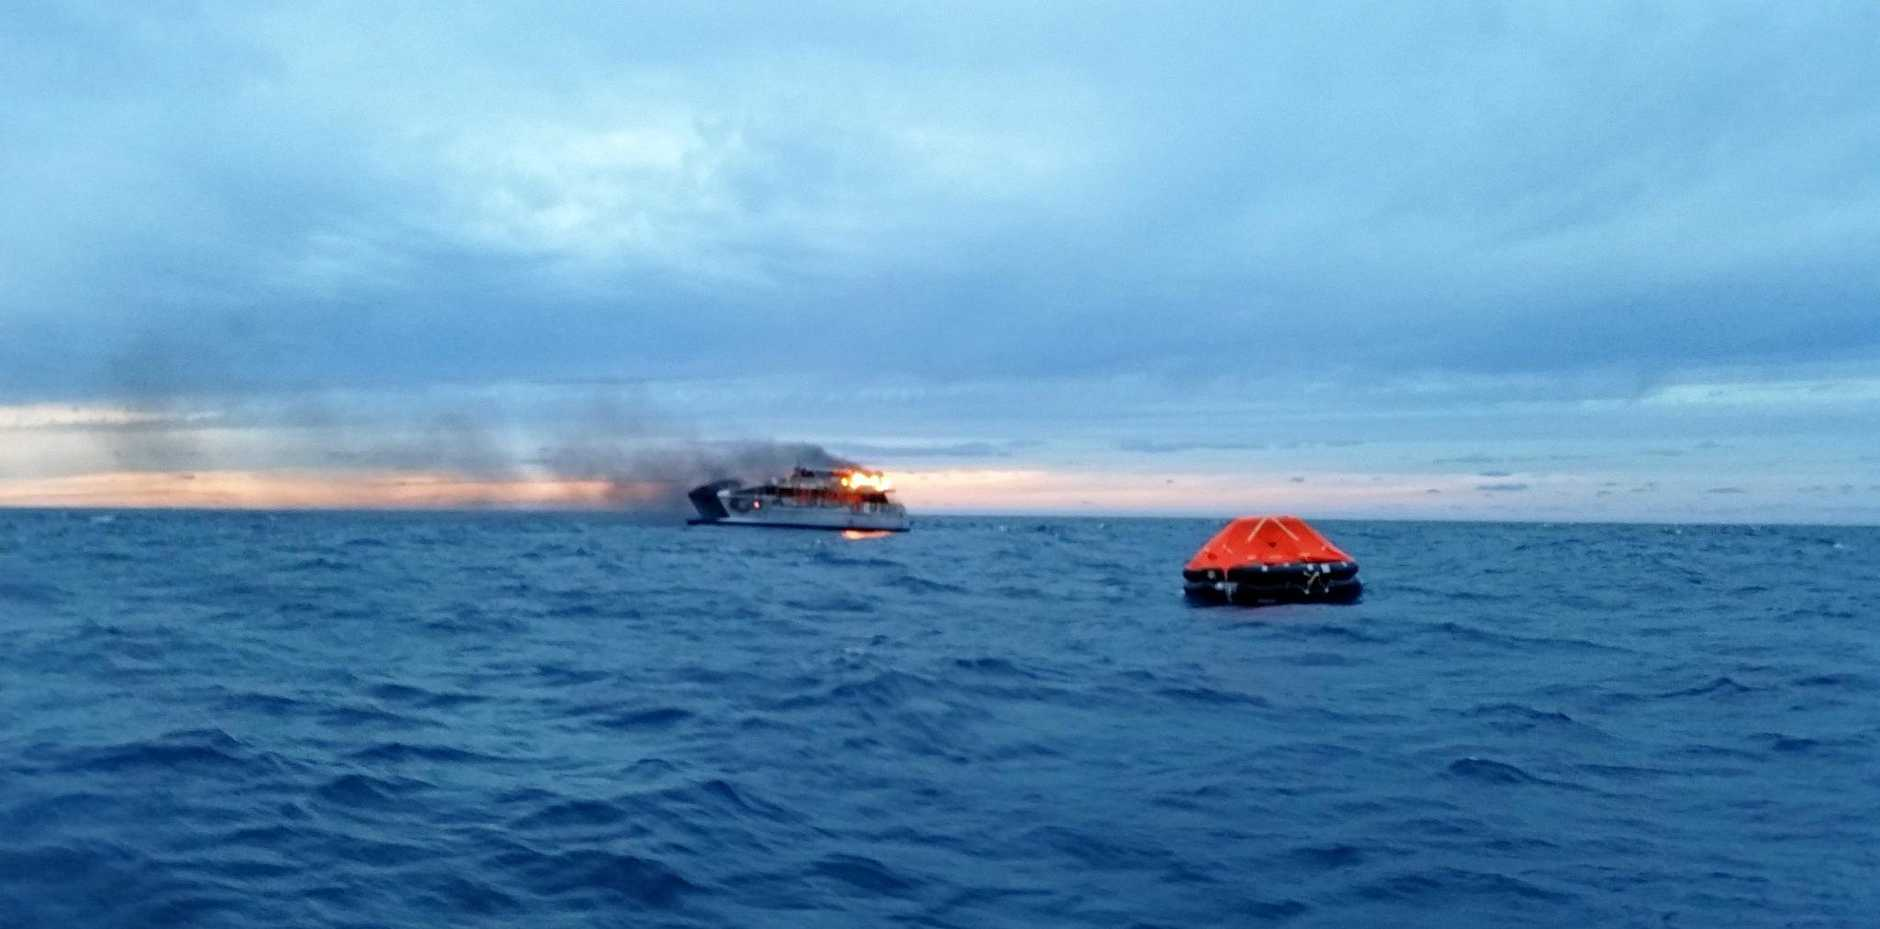 BOAT BLAZE: The Spirit of 1770 pictured at sunset on May 11 as it burnt to the waterline near Lady Musgrave. Inset: Emergency services cared for the passengers on baord.